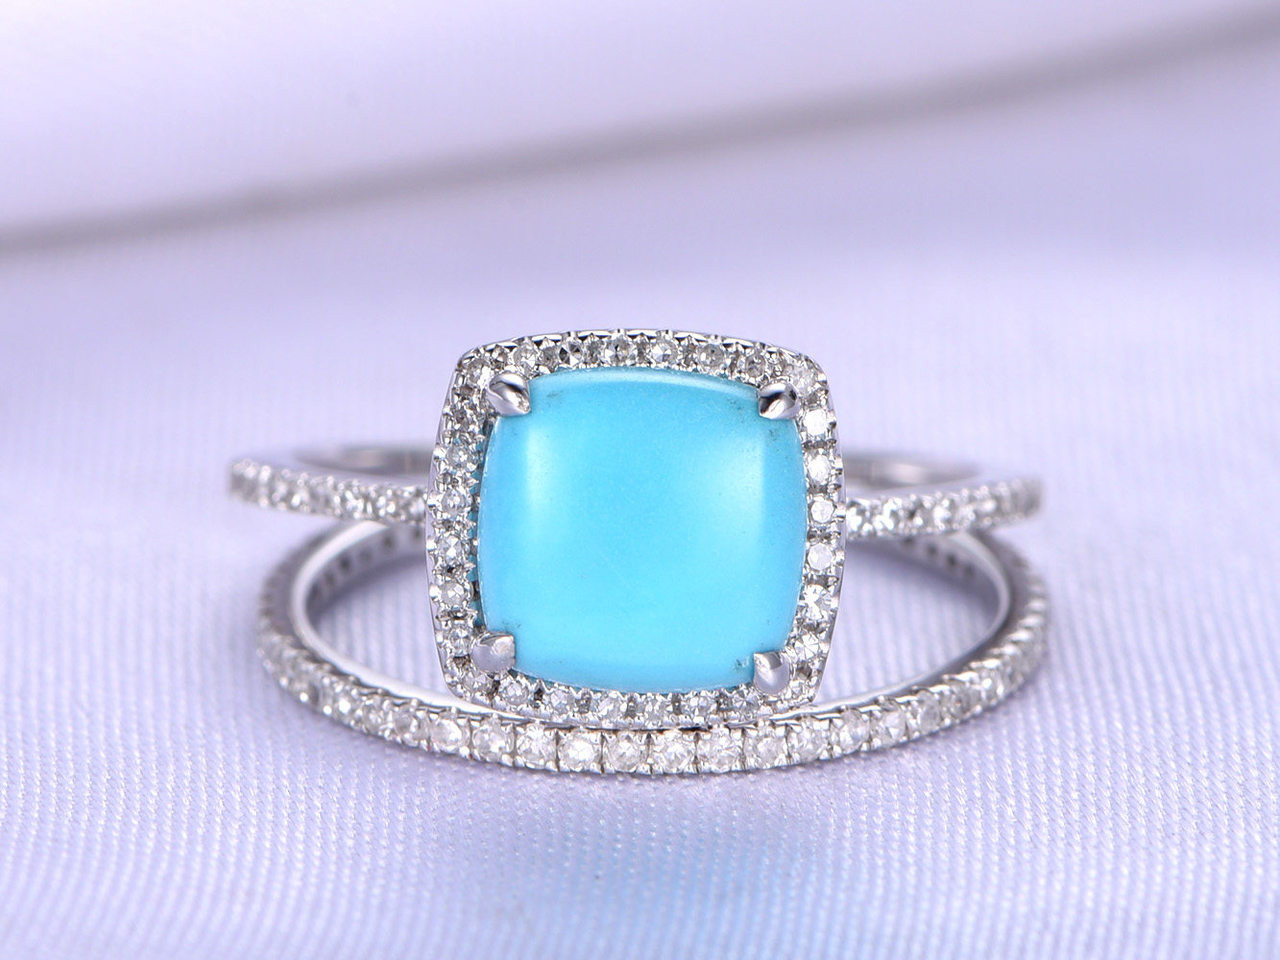 Sleeping Beauty Turquoise Ring Set,8mm Cushion Cut Turquoise ...